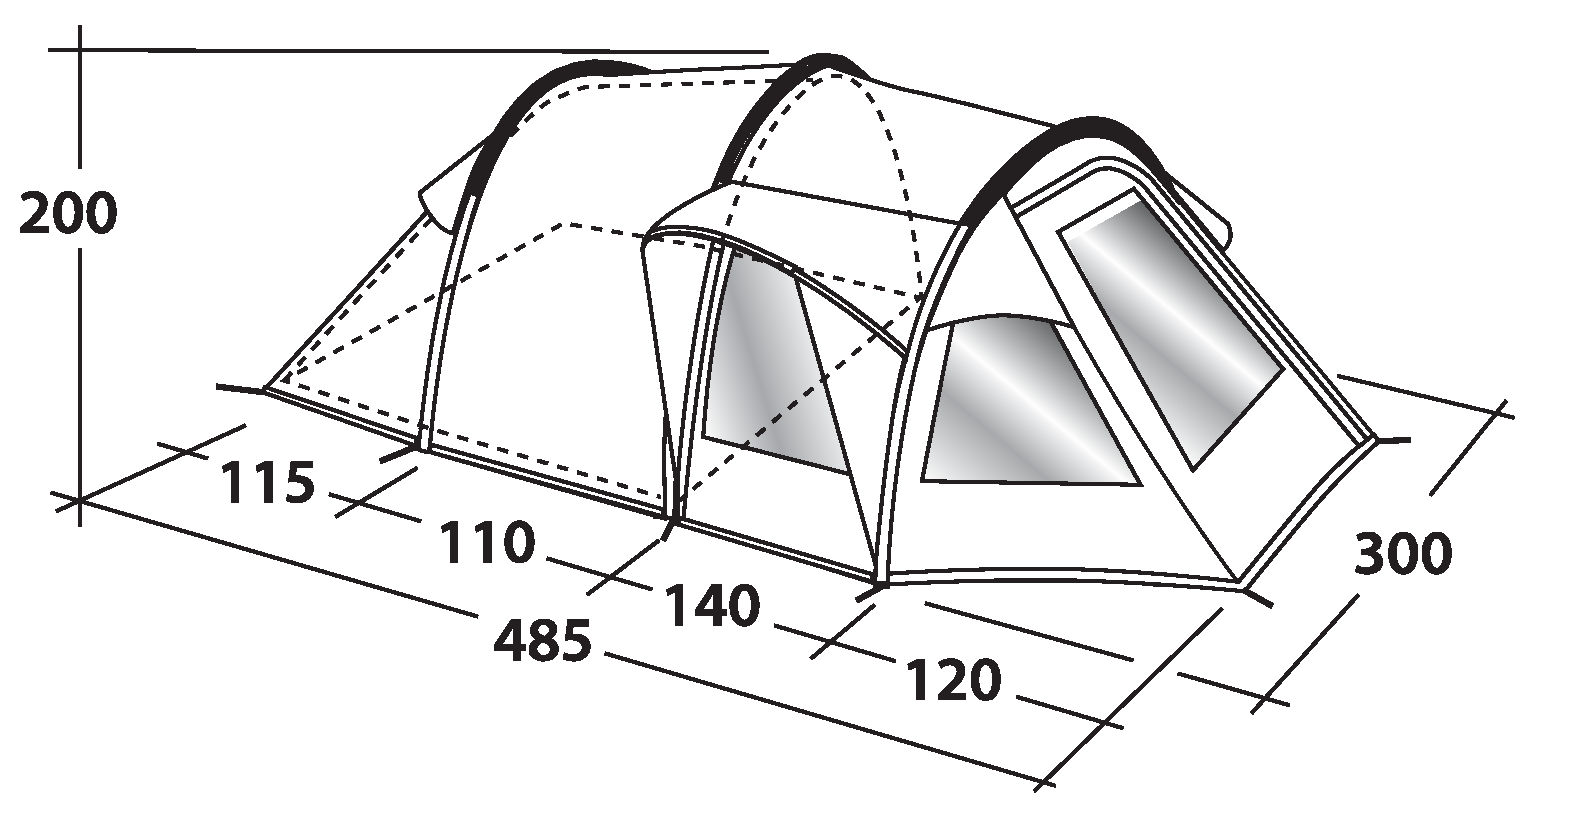 ... Outwell Nevada 4 tent dimensions ...  sc 1 st  C&erlands & Outwell Nevada 4 Tent - 2018